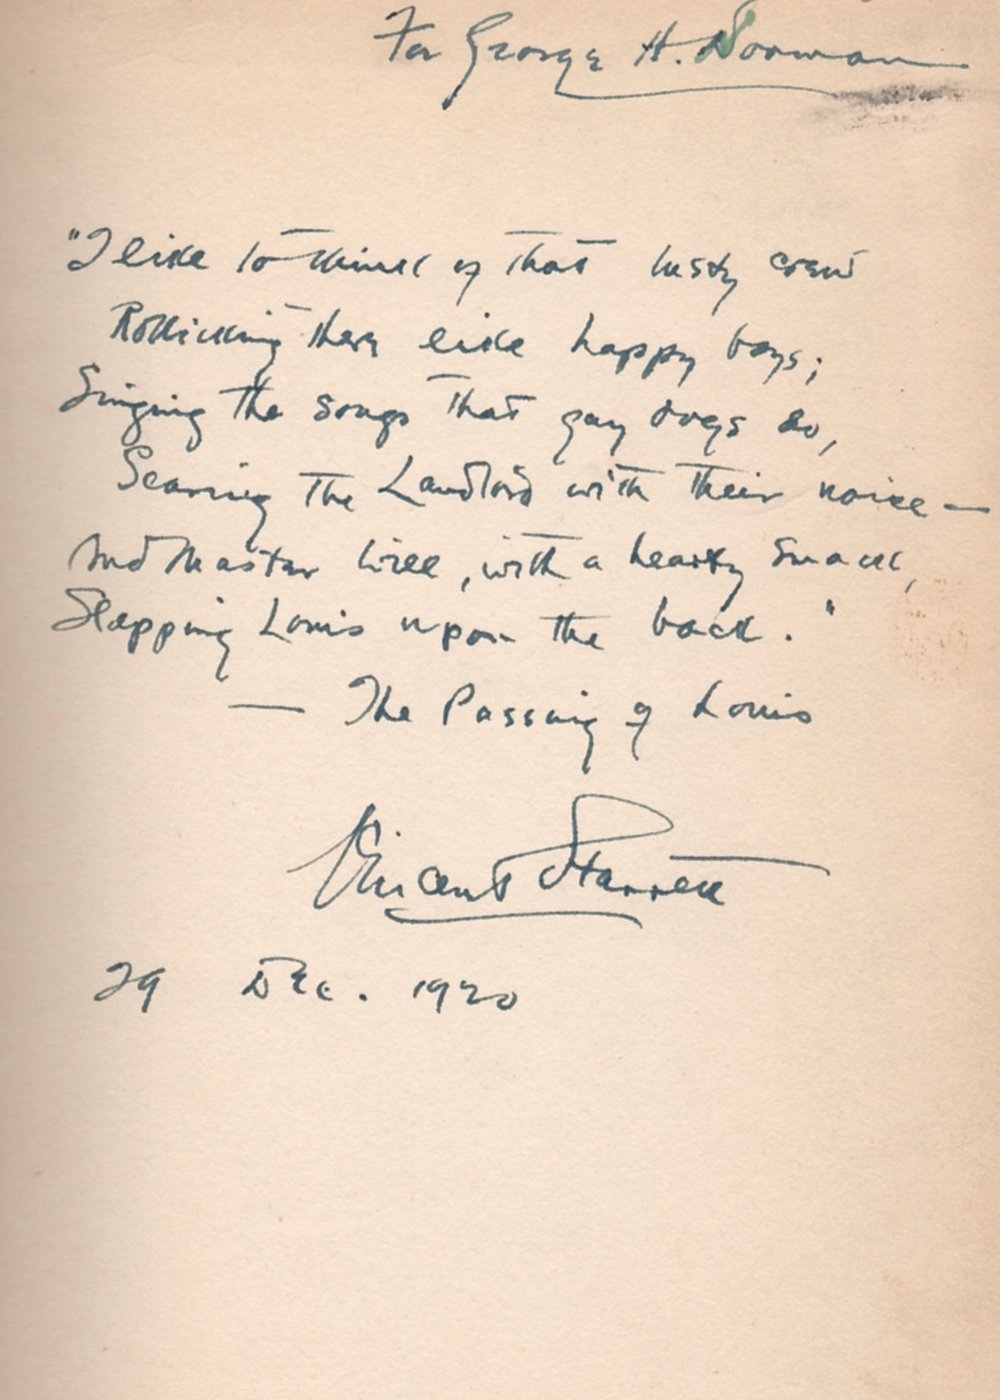 Starrett inscribed this copy of  In Praise of Stevenson  with a verse from his poem to the author.